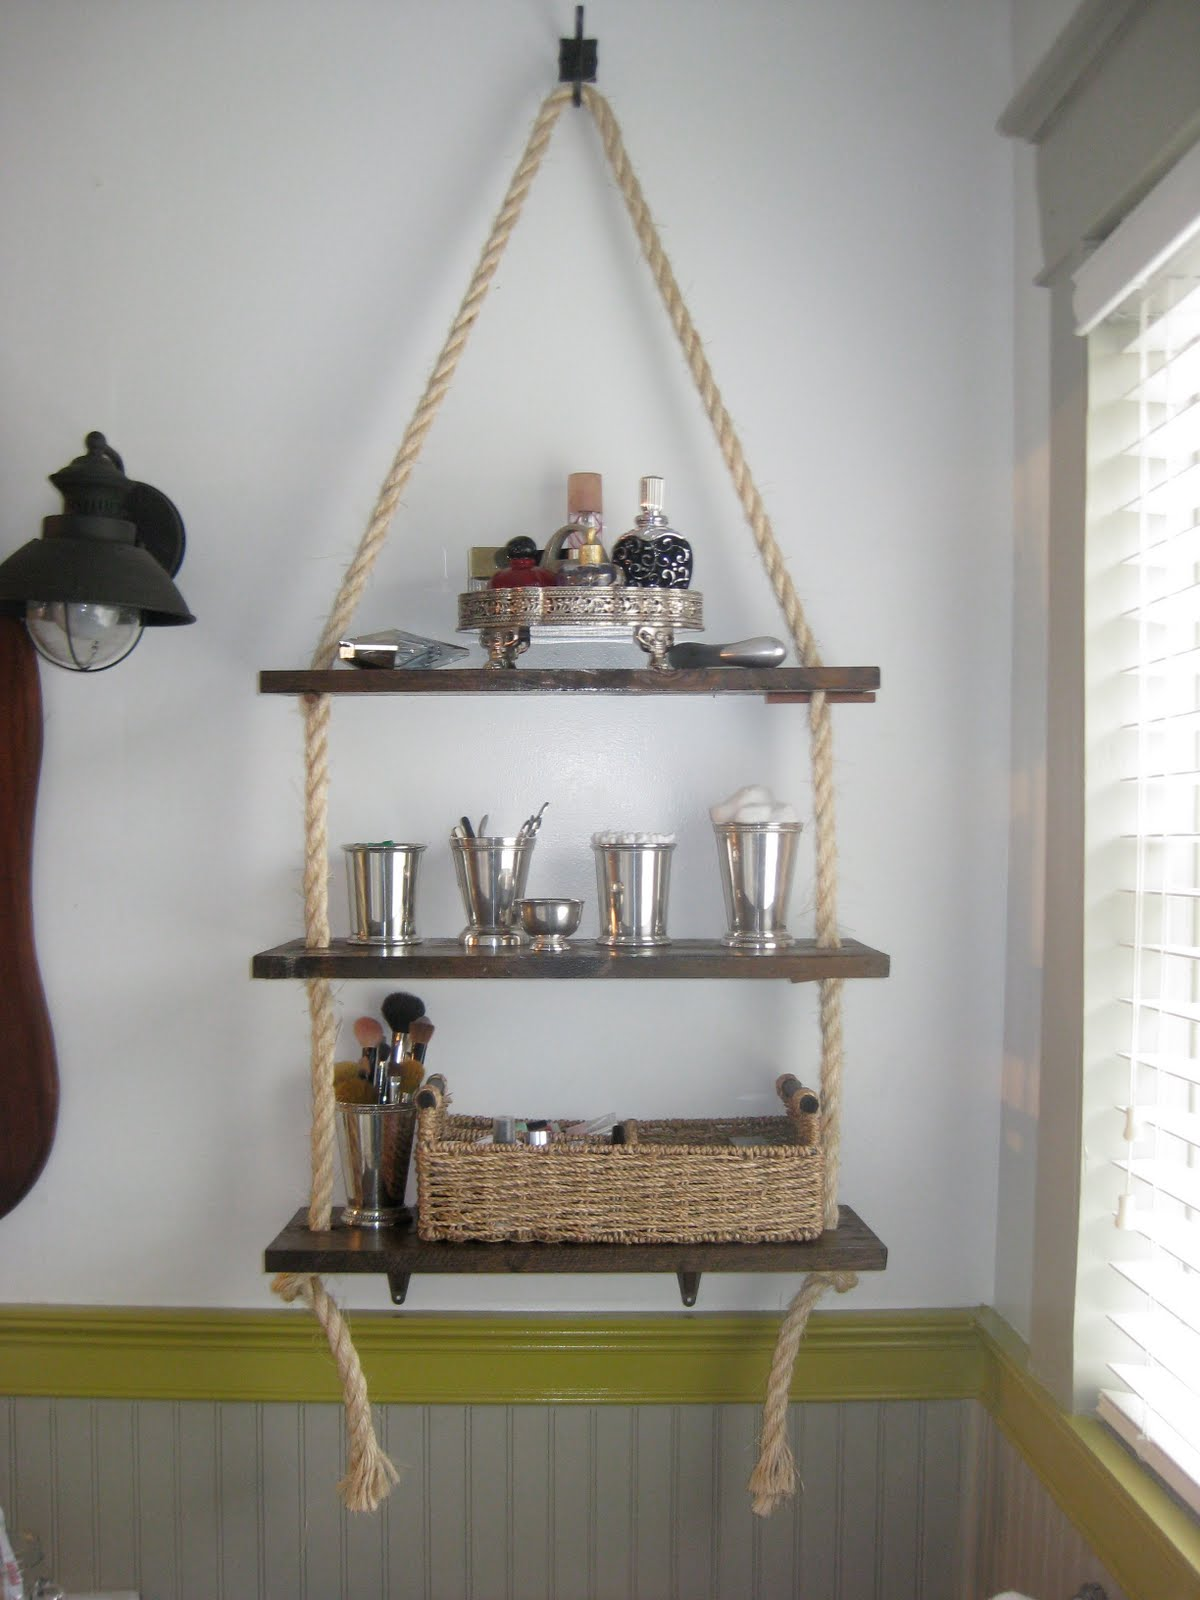 Diy bathroom storage ideas - Diy Bathroom Shelving